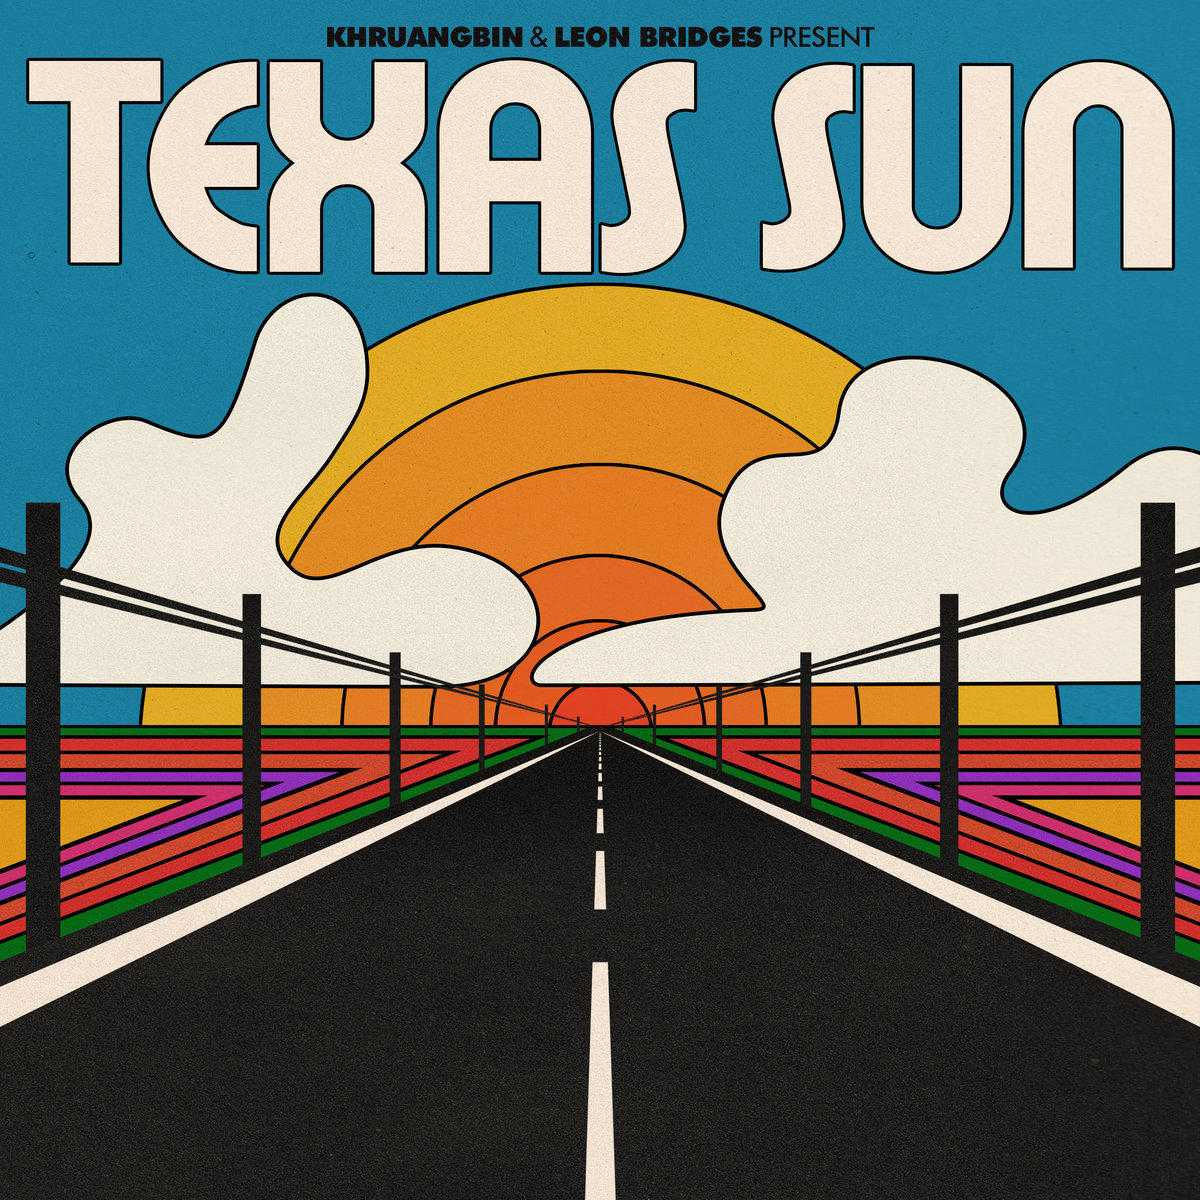 Khruangbin-Leon Bridges-Texas Sun